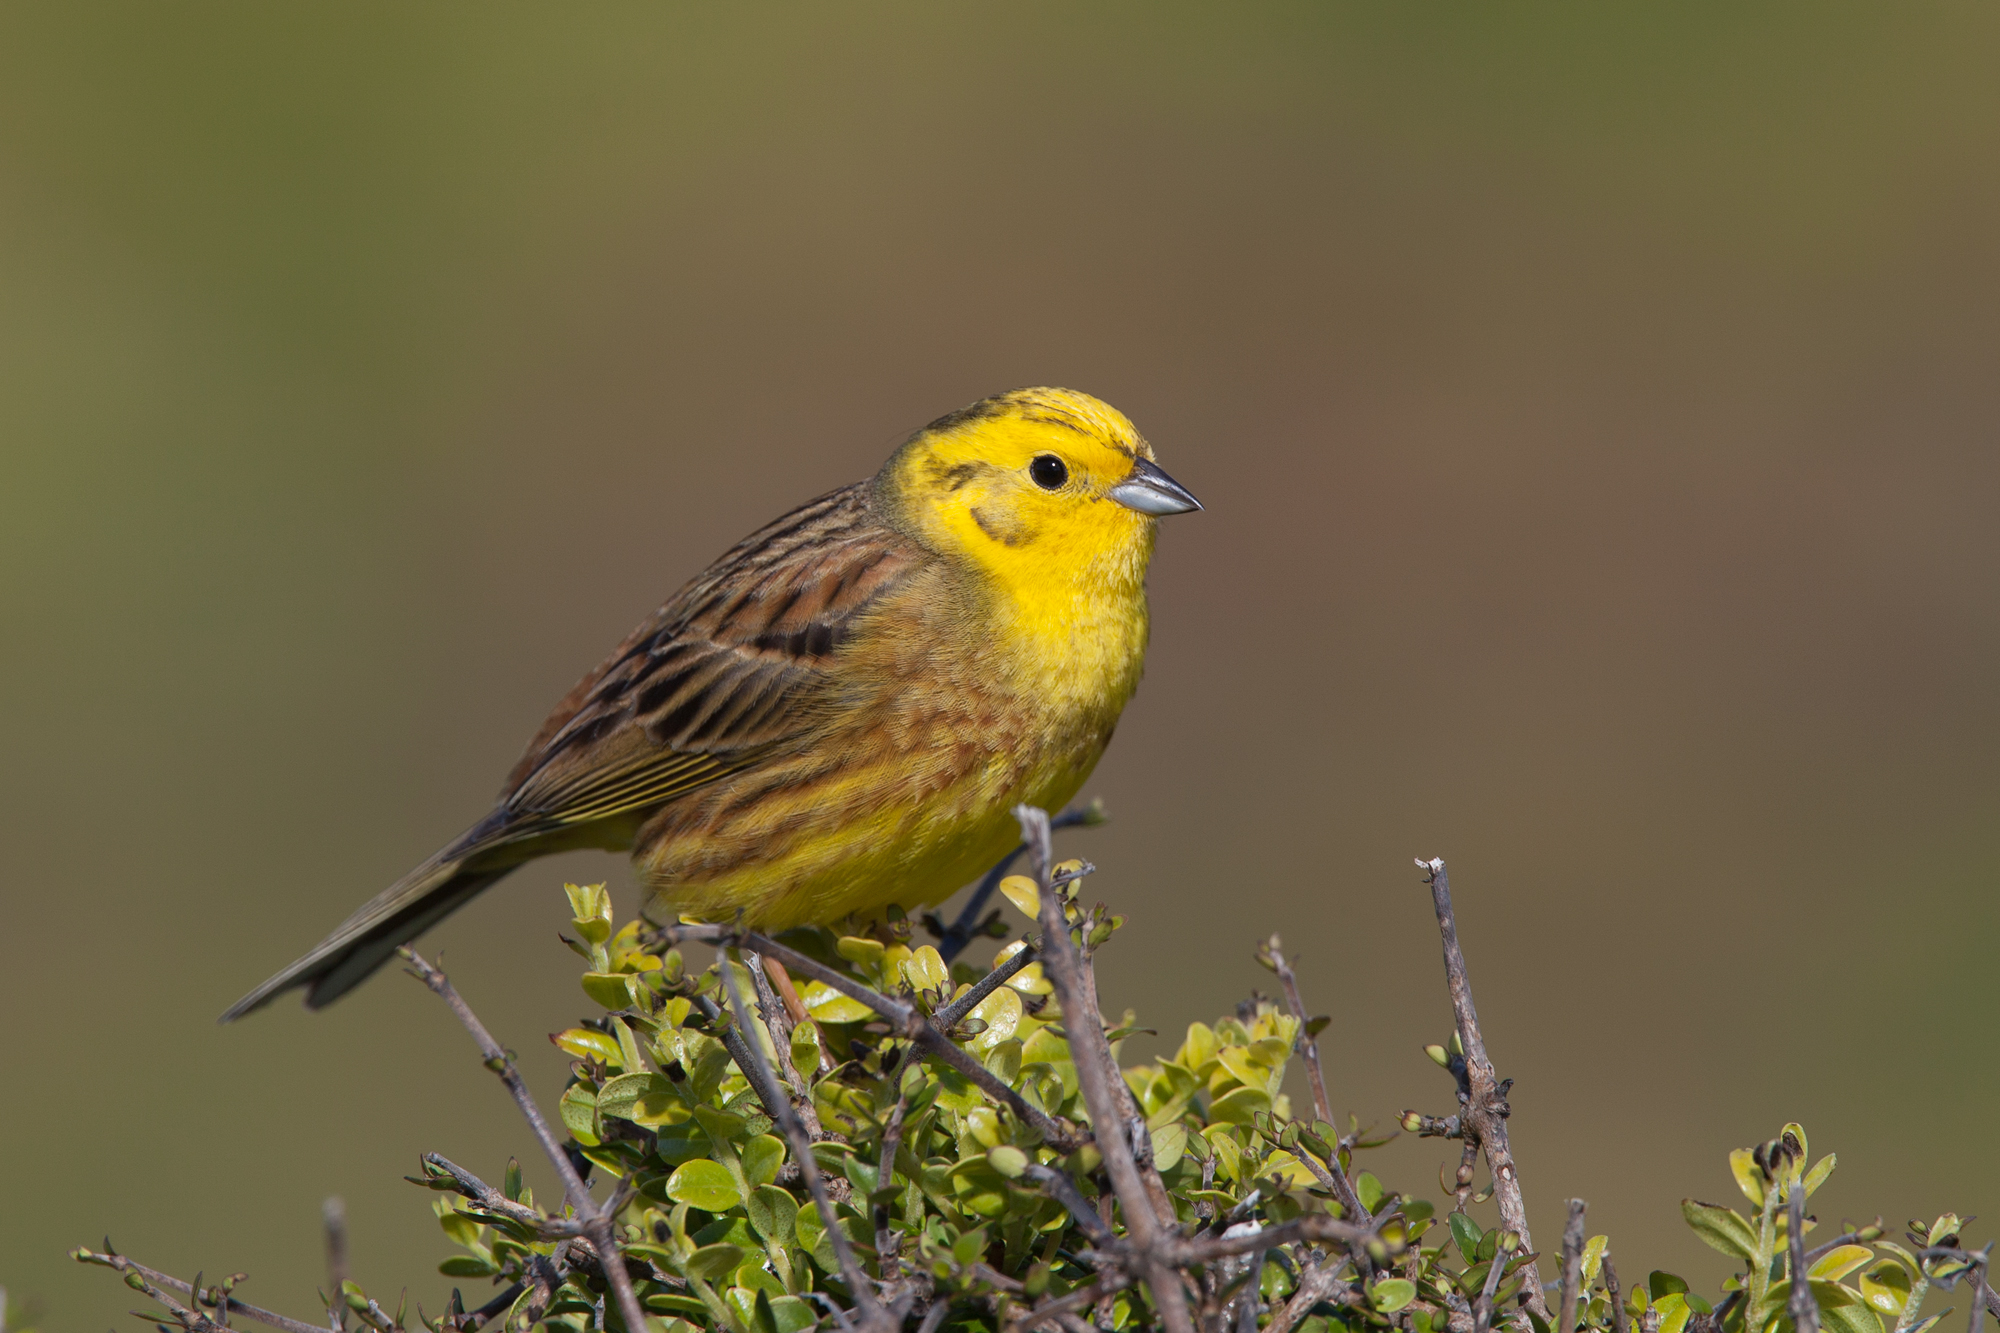 Yellowhammer. Adult male. Near Cape Foulwind, November 2011. Image © Sonja Ross by Sonja Ross